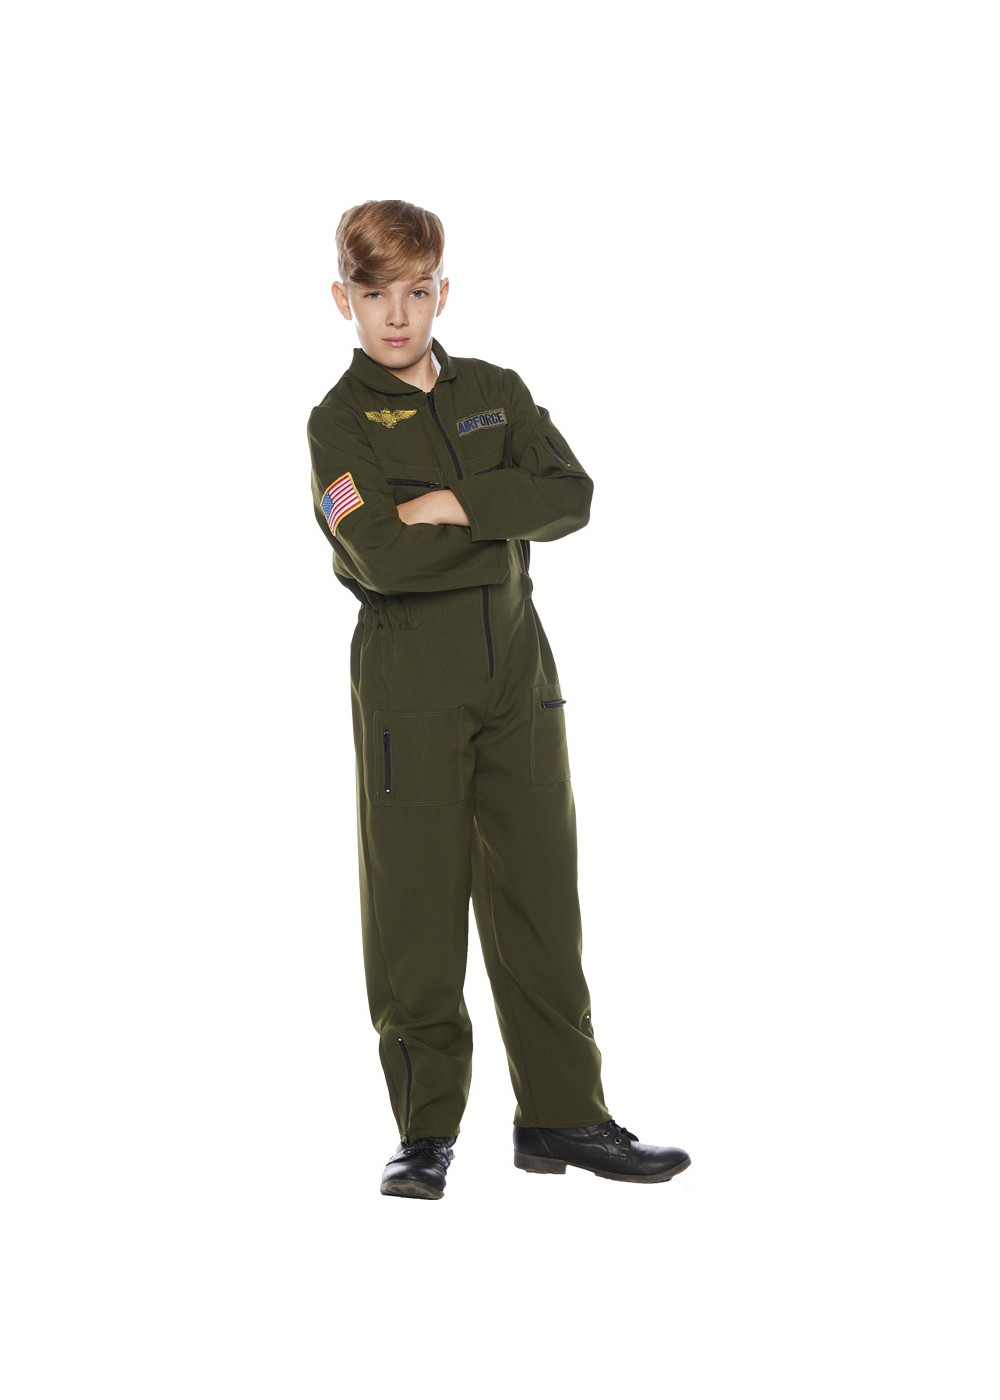 Kids Child Flight Suit Costume